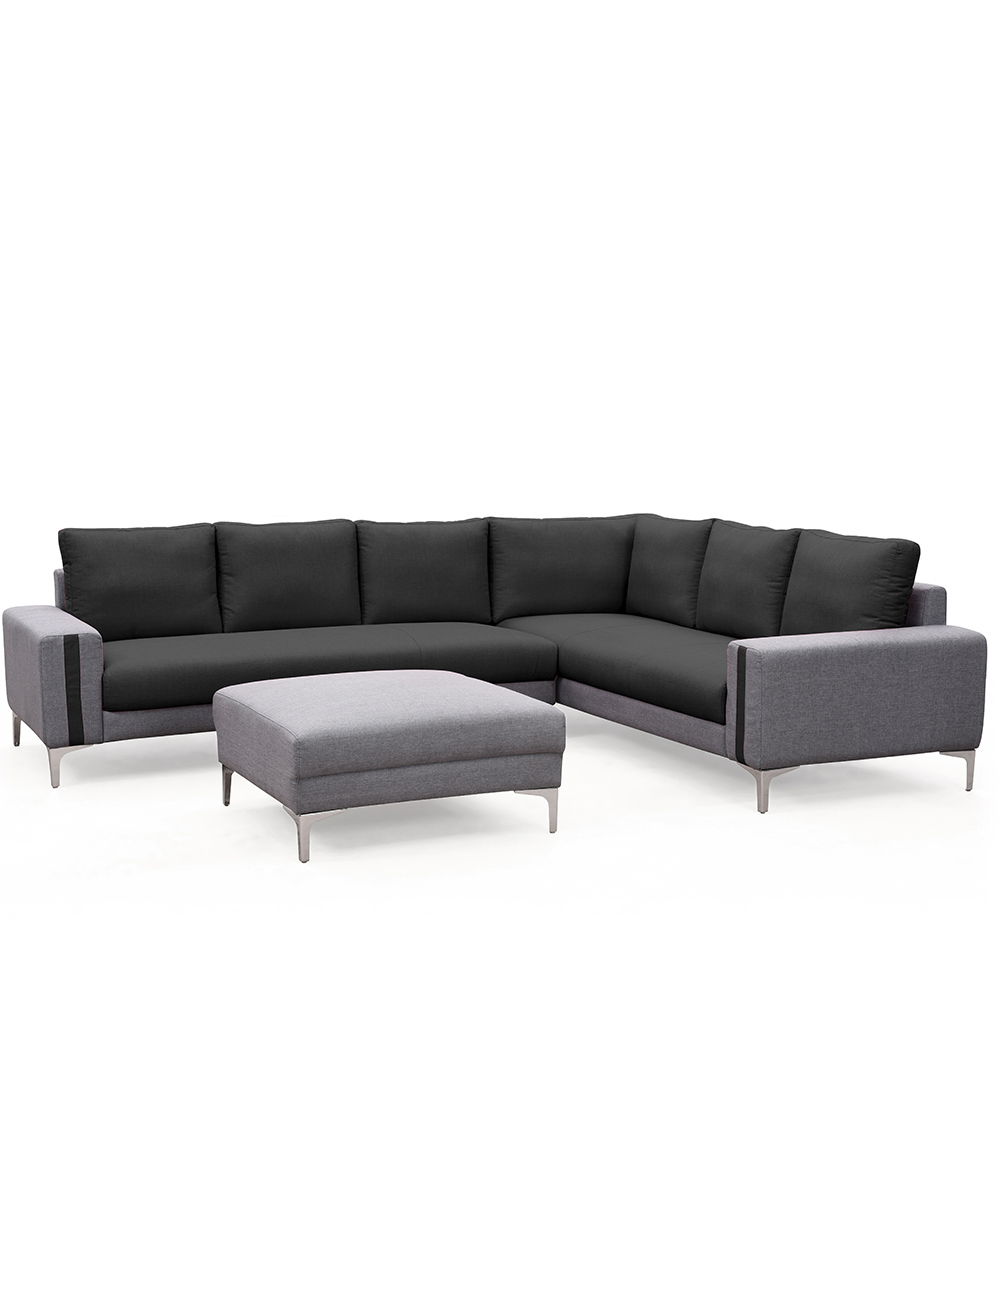 ecksofa cliff mit hocker schwarz grau. Black Bedroom Furniture Sets. Home Design Ideas